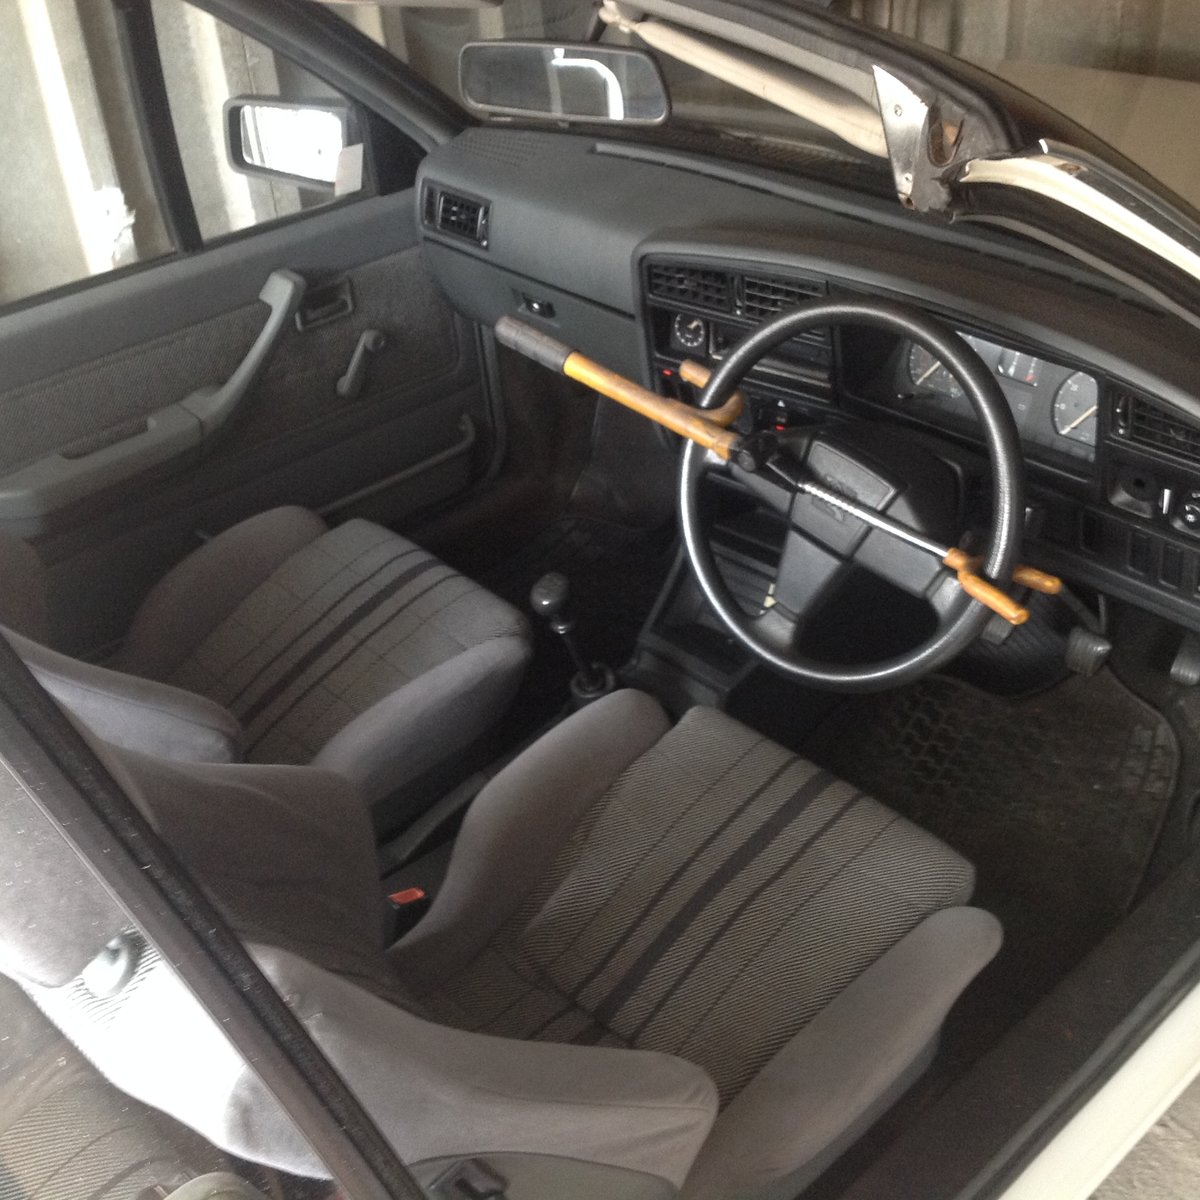 1986 Cavalier convertible For Sale (picture 5 of 6)